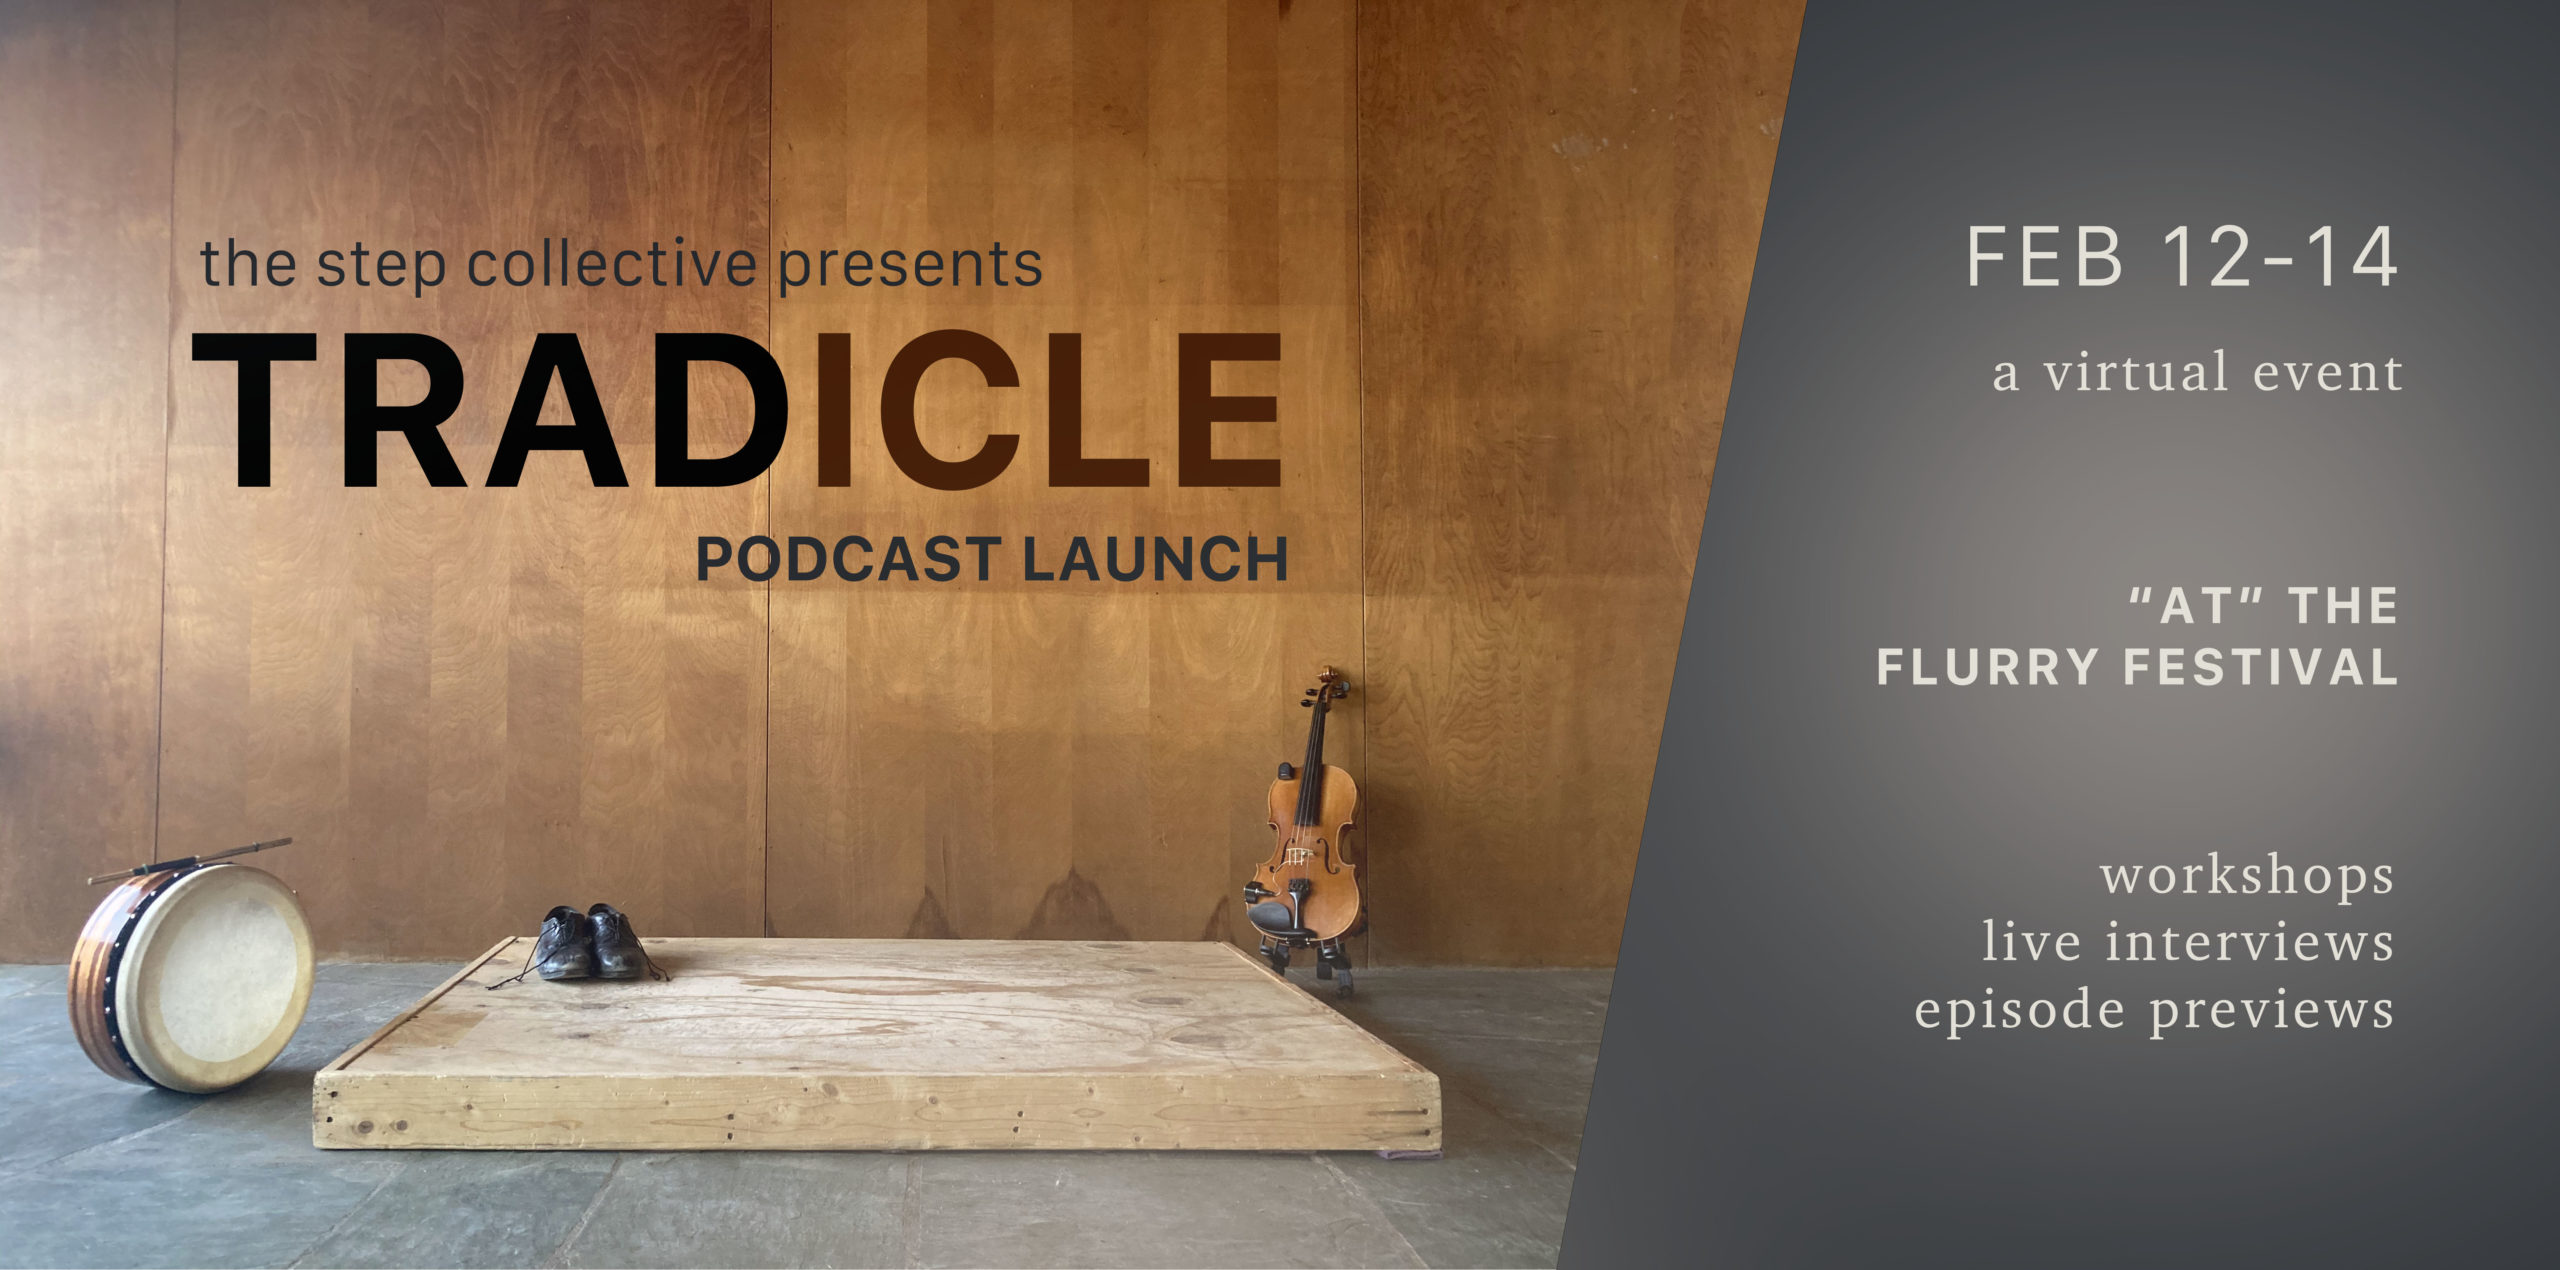 Tradicle Launch Banner